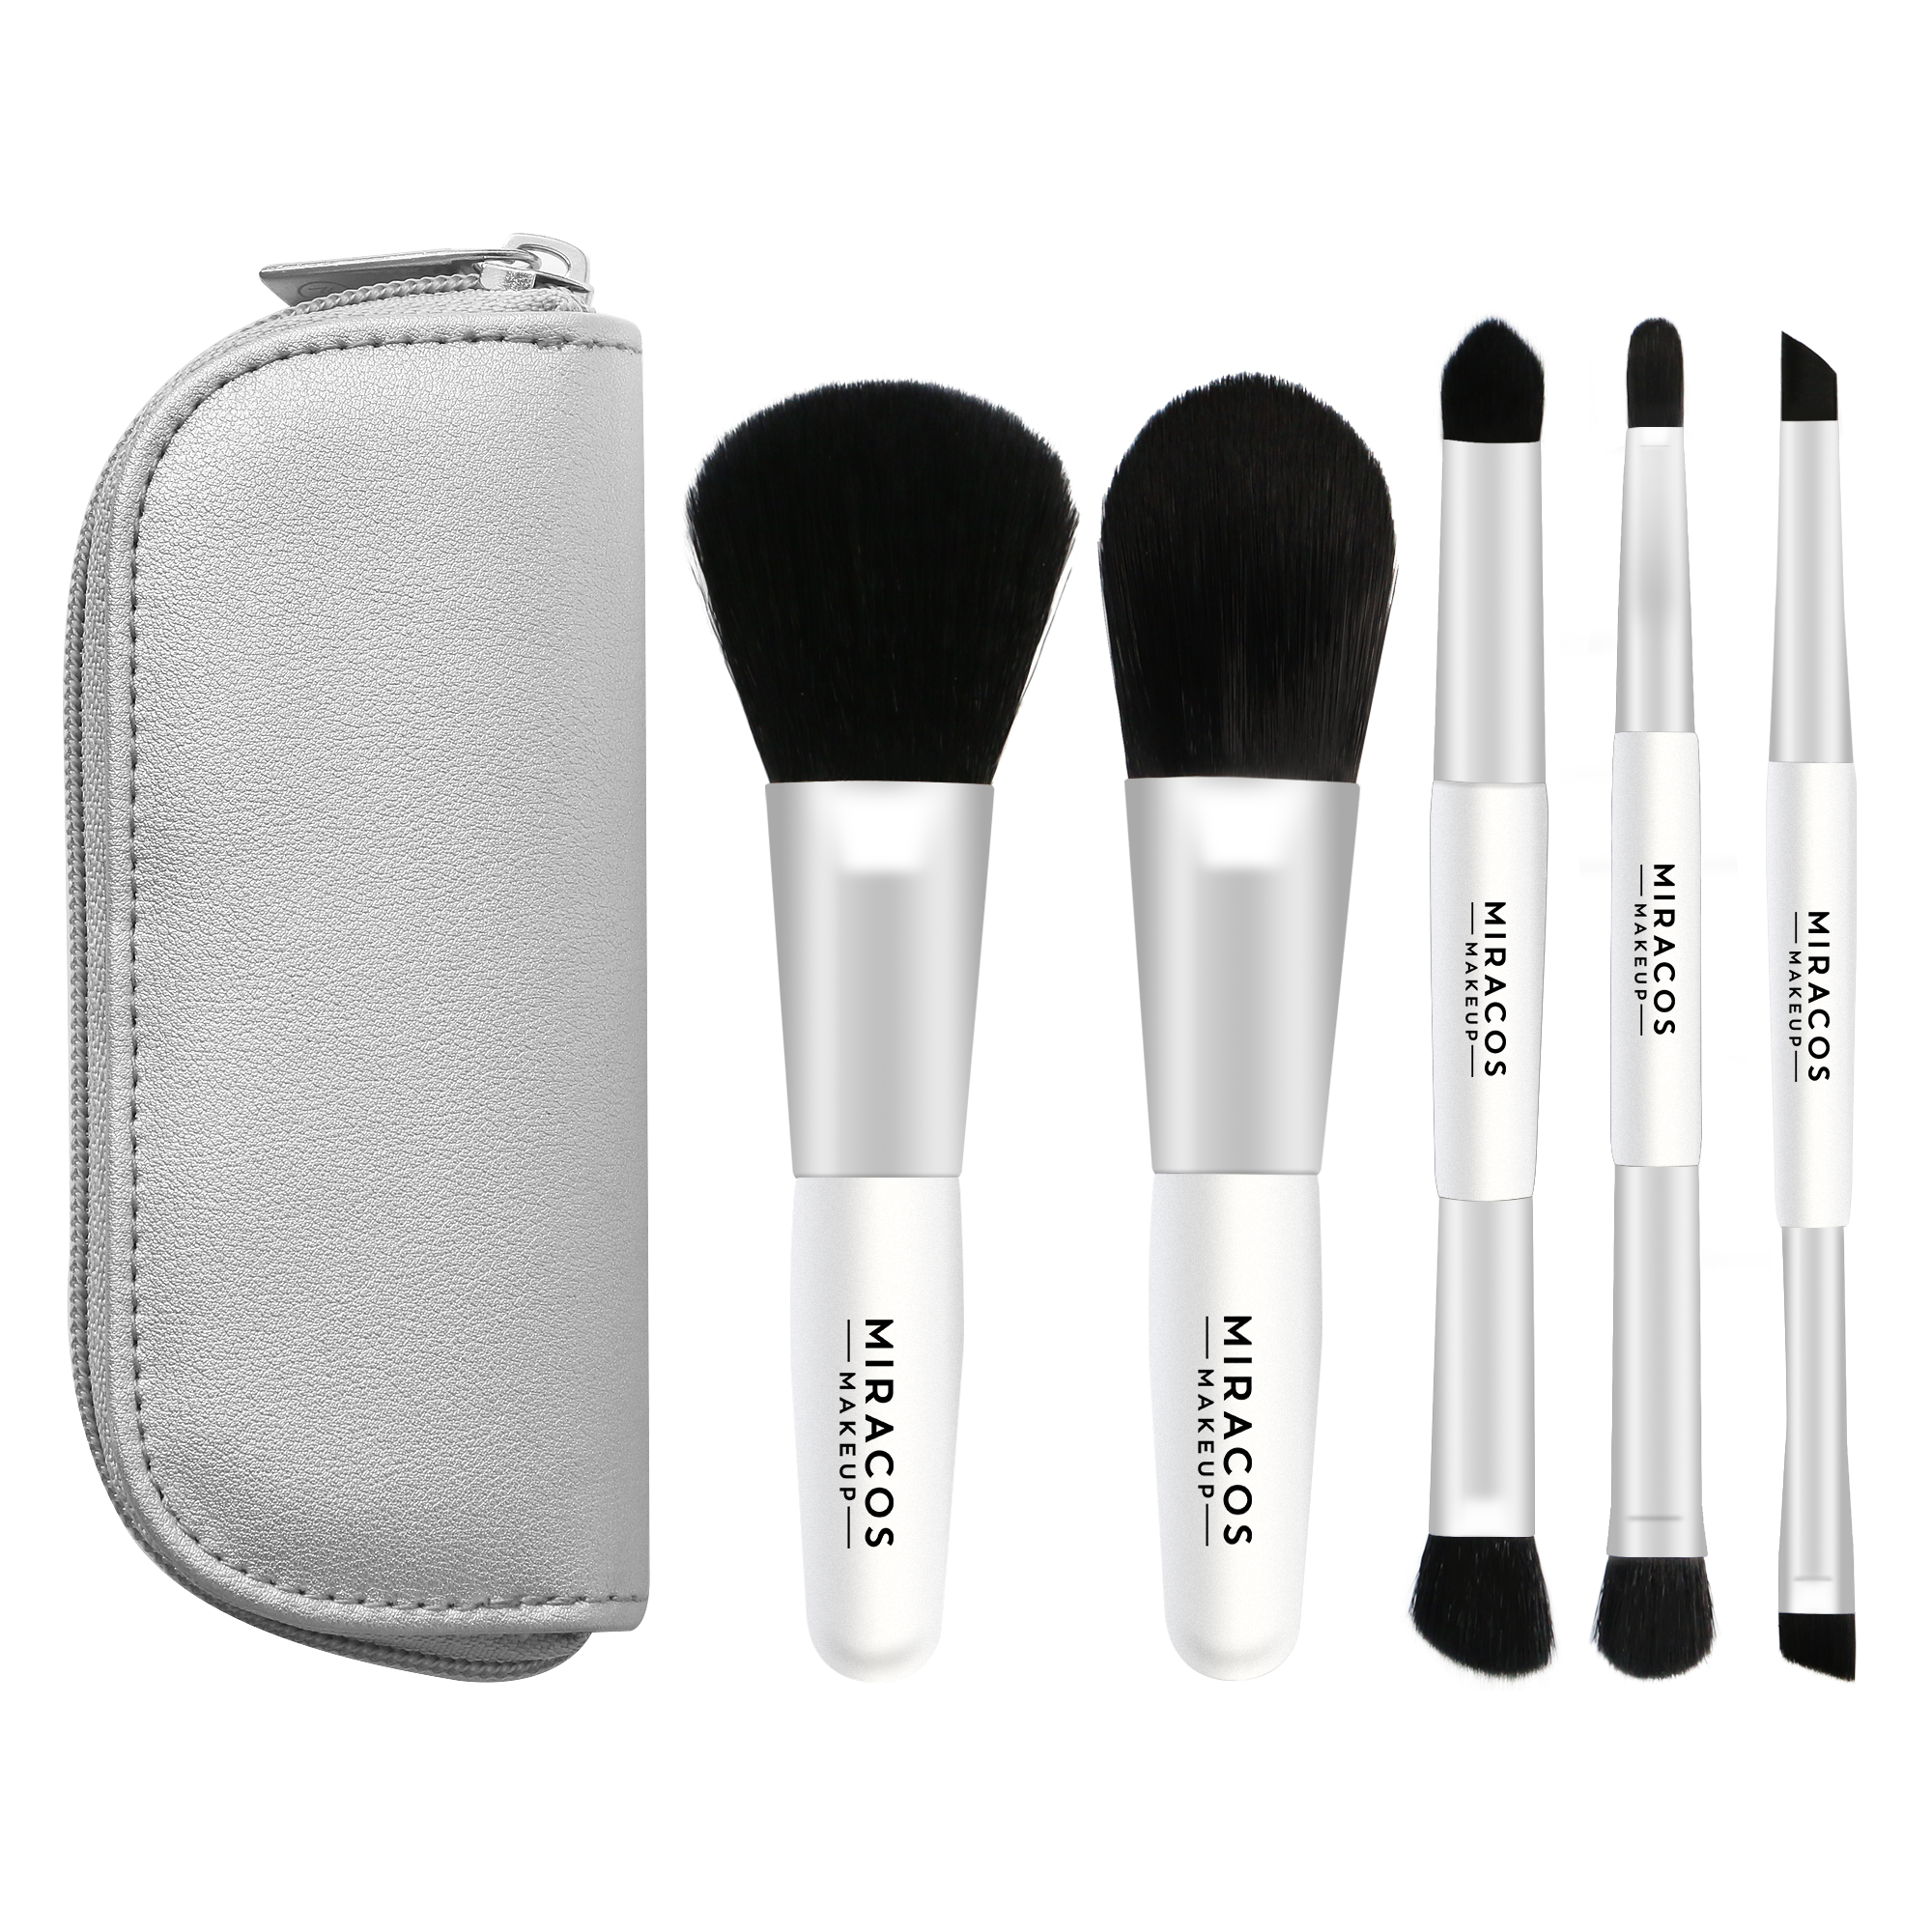 MM21 Travel Makeup Brush Set with Zippered Case